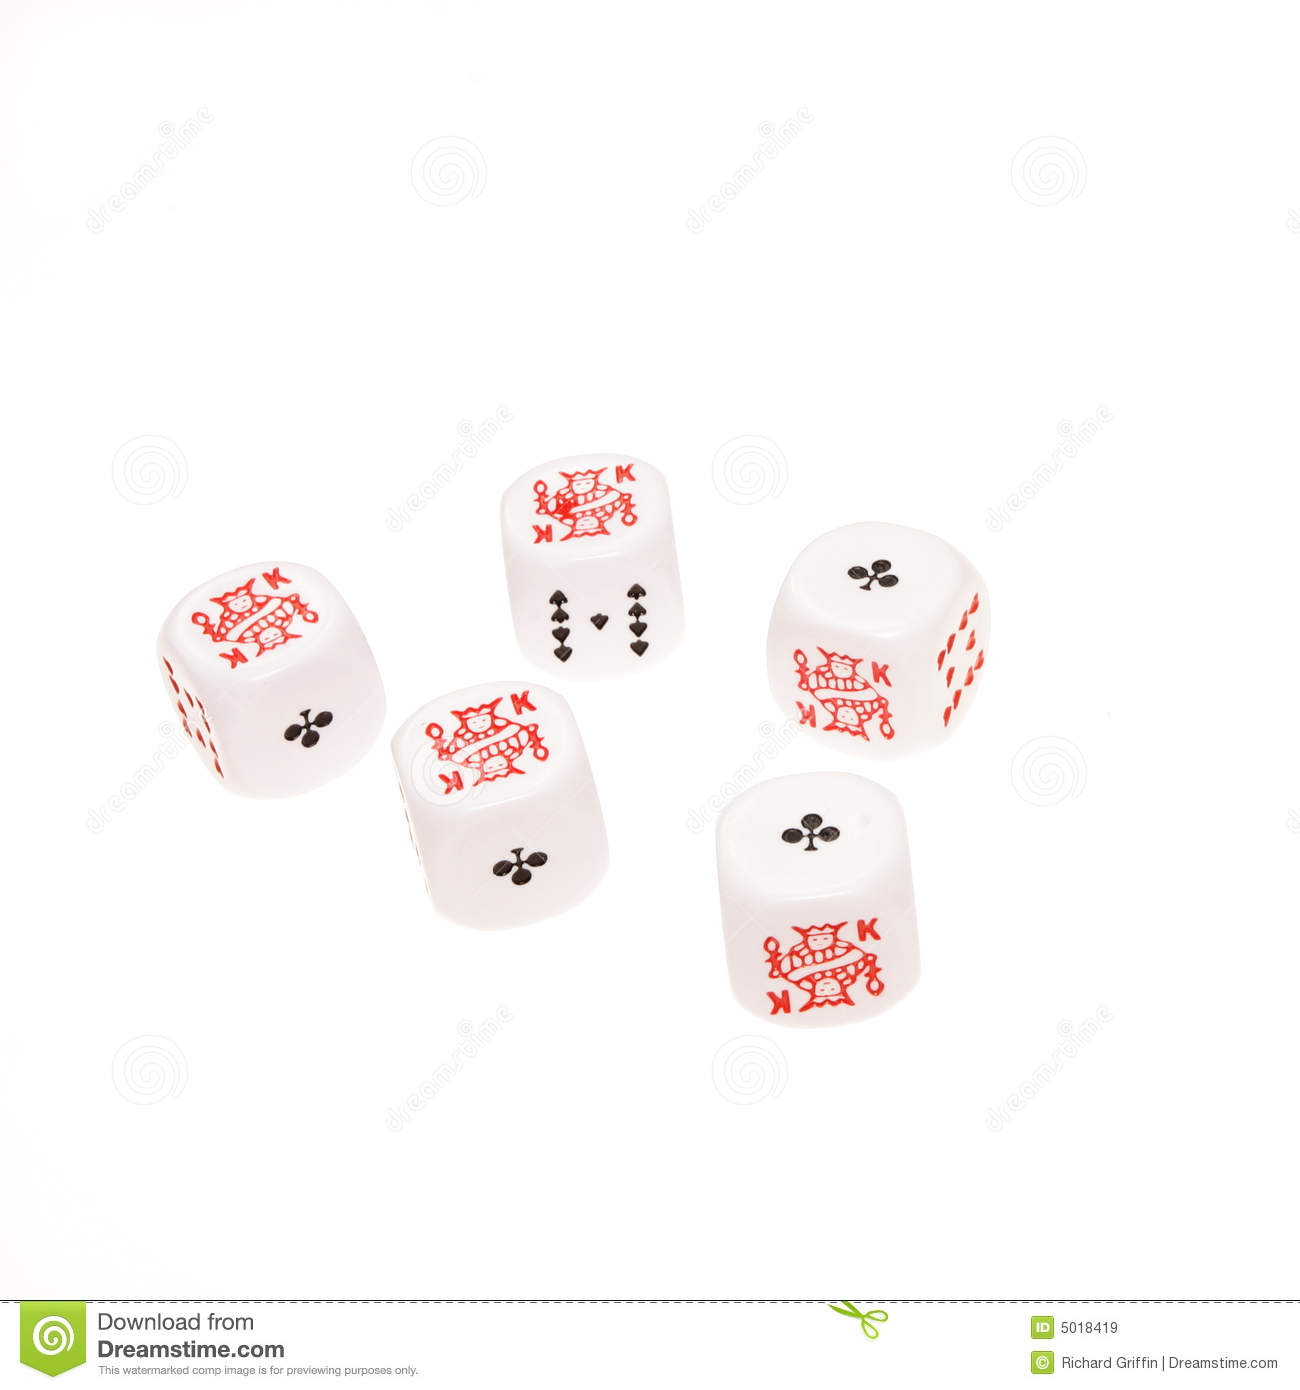 Poker dice probability full house strategies for playing roulette